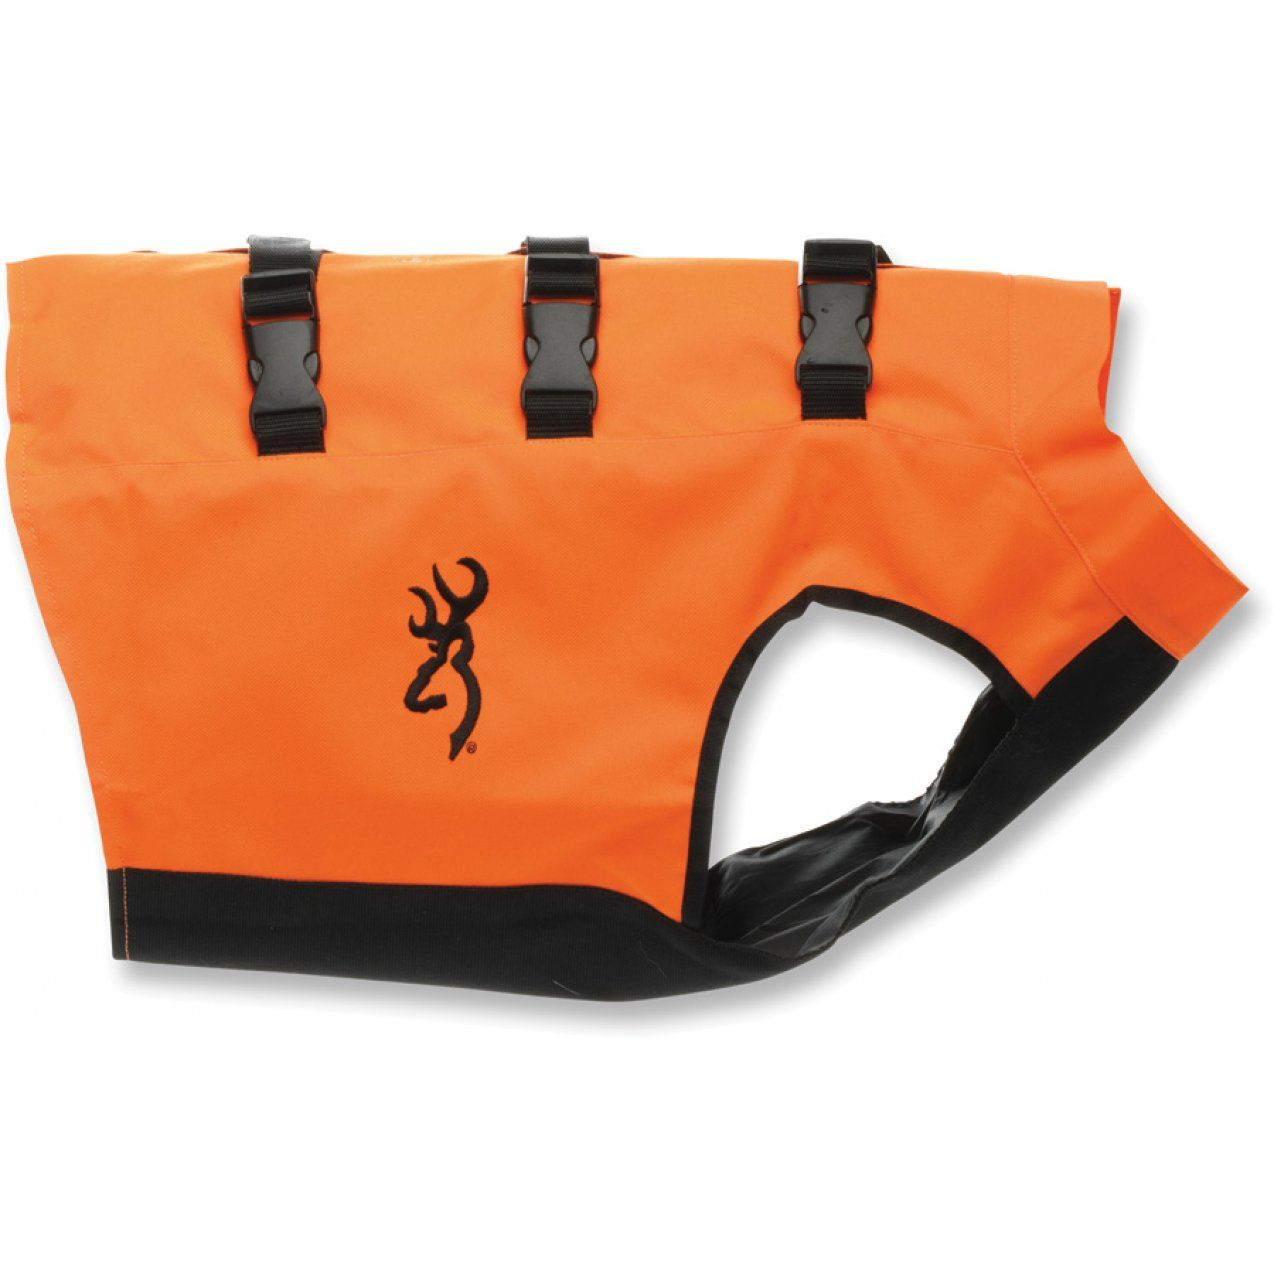 Dog Safety Vests Browning Dog Training Accessories Hunting